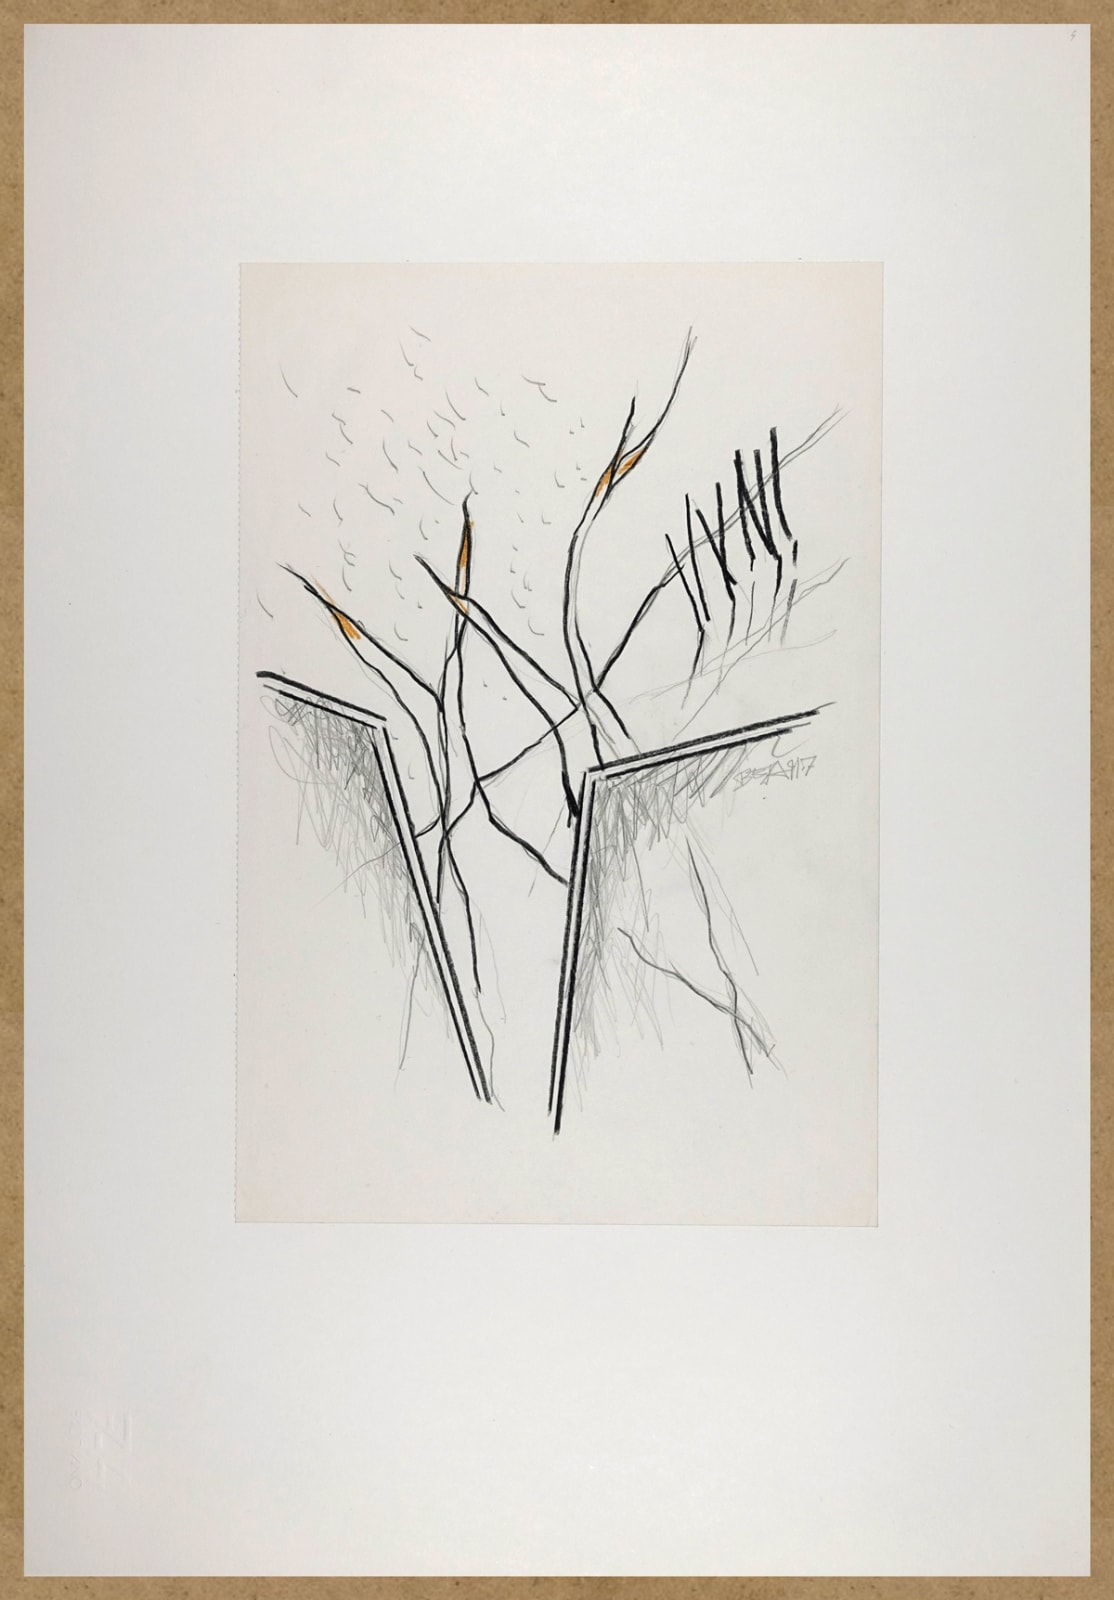 Bert Theis, Pays sage 4, 1991, Drawing, crayon on paper, 48 x 33 cm Courtesy: BertTheis Archive & Erna Hecey Gallery